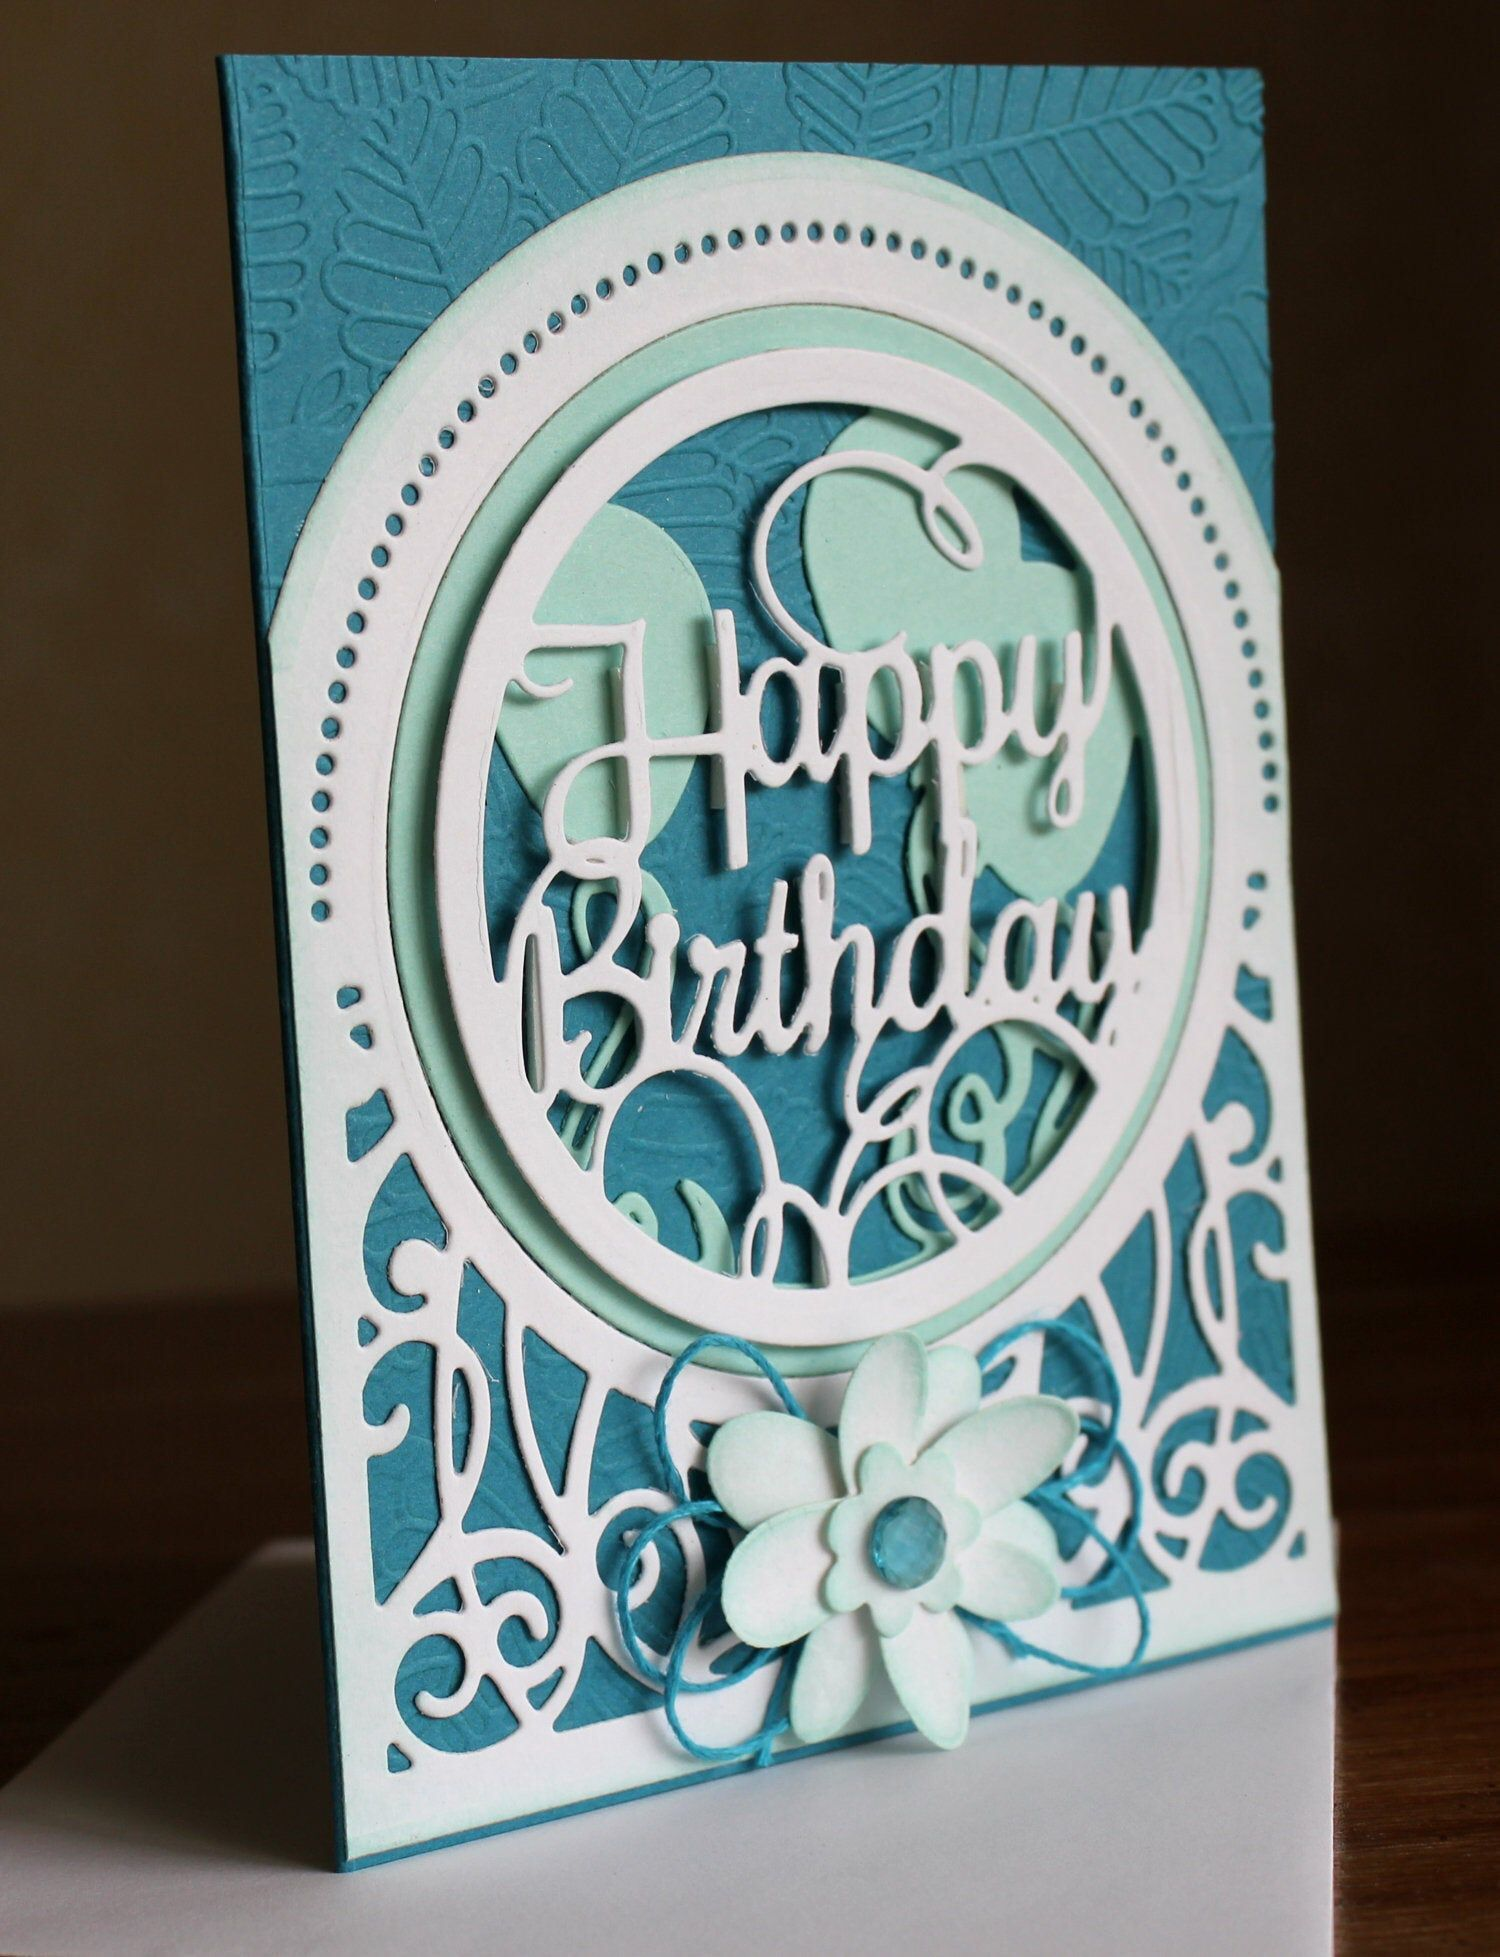 Looking For For Inspiration For Happy Birthday Browse Around This Site For Unique Happy Birthday 3d Birthday Card Birthday Cards For Her Birthday Cards For Him